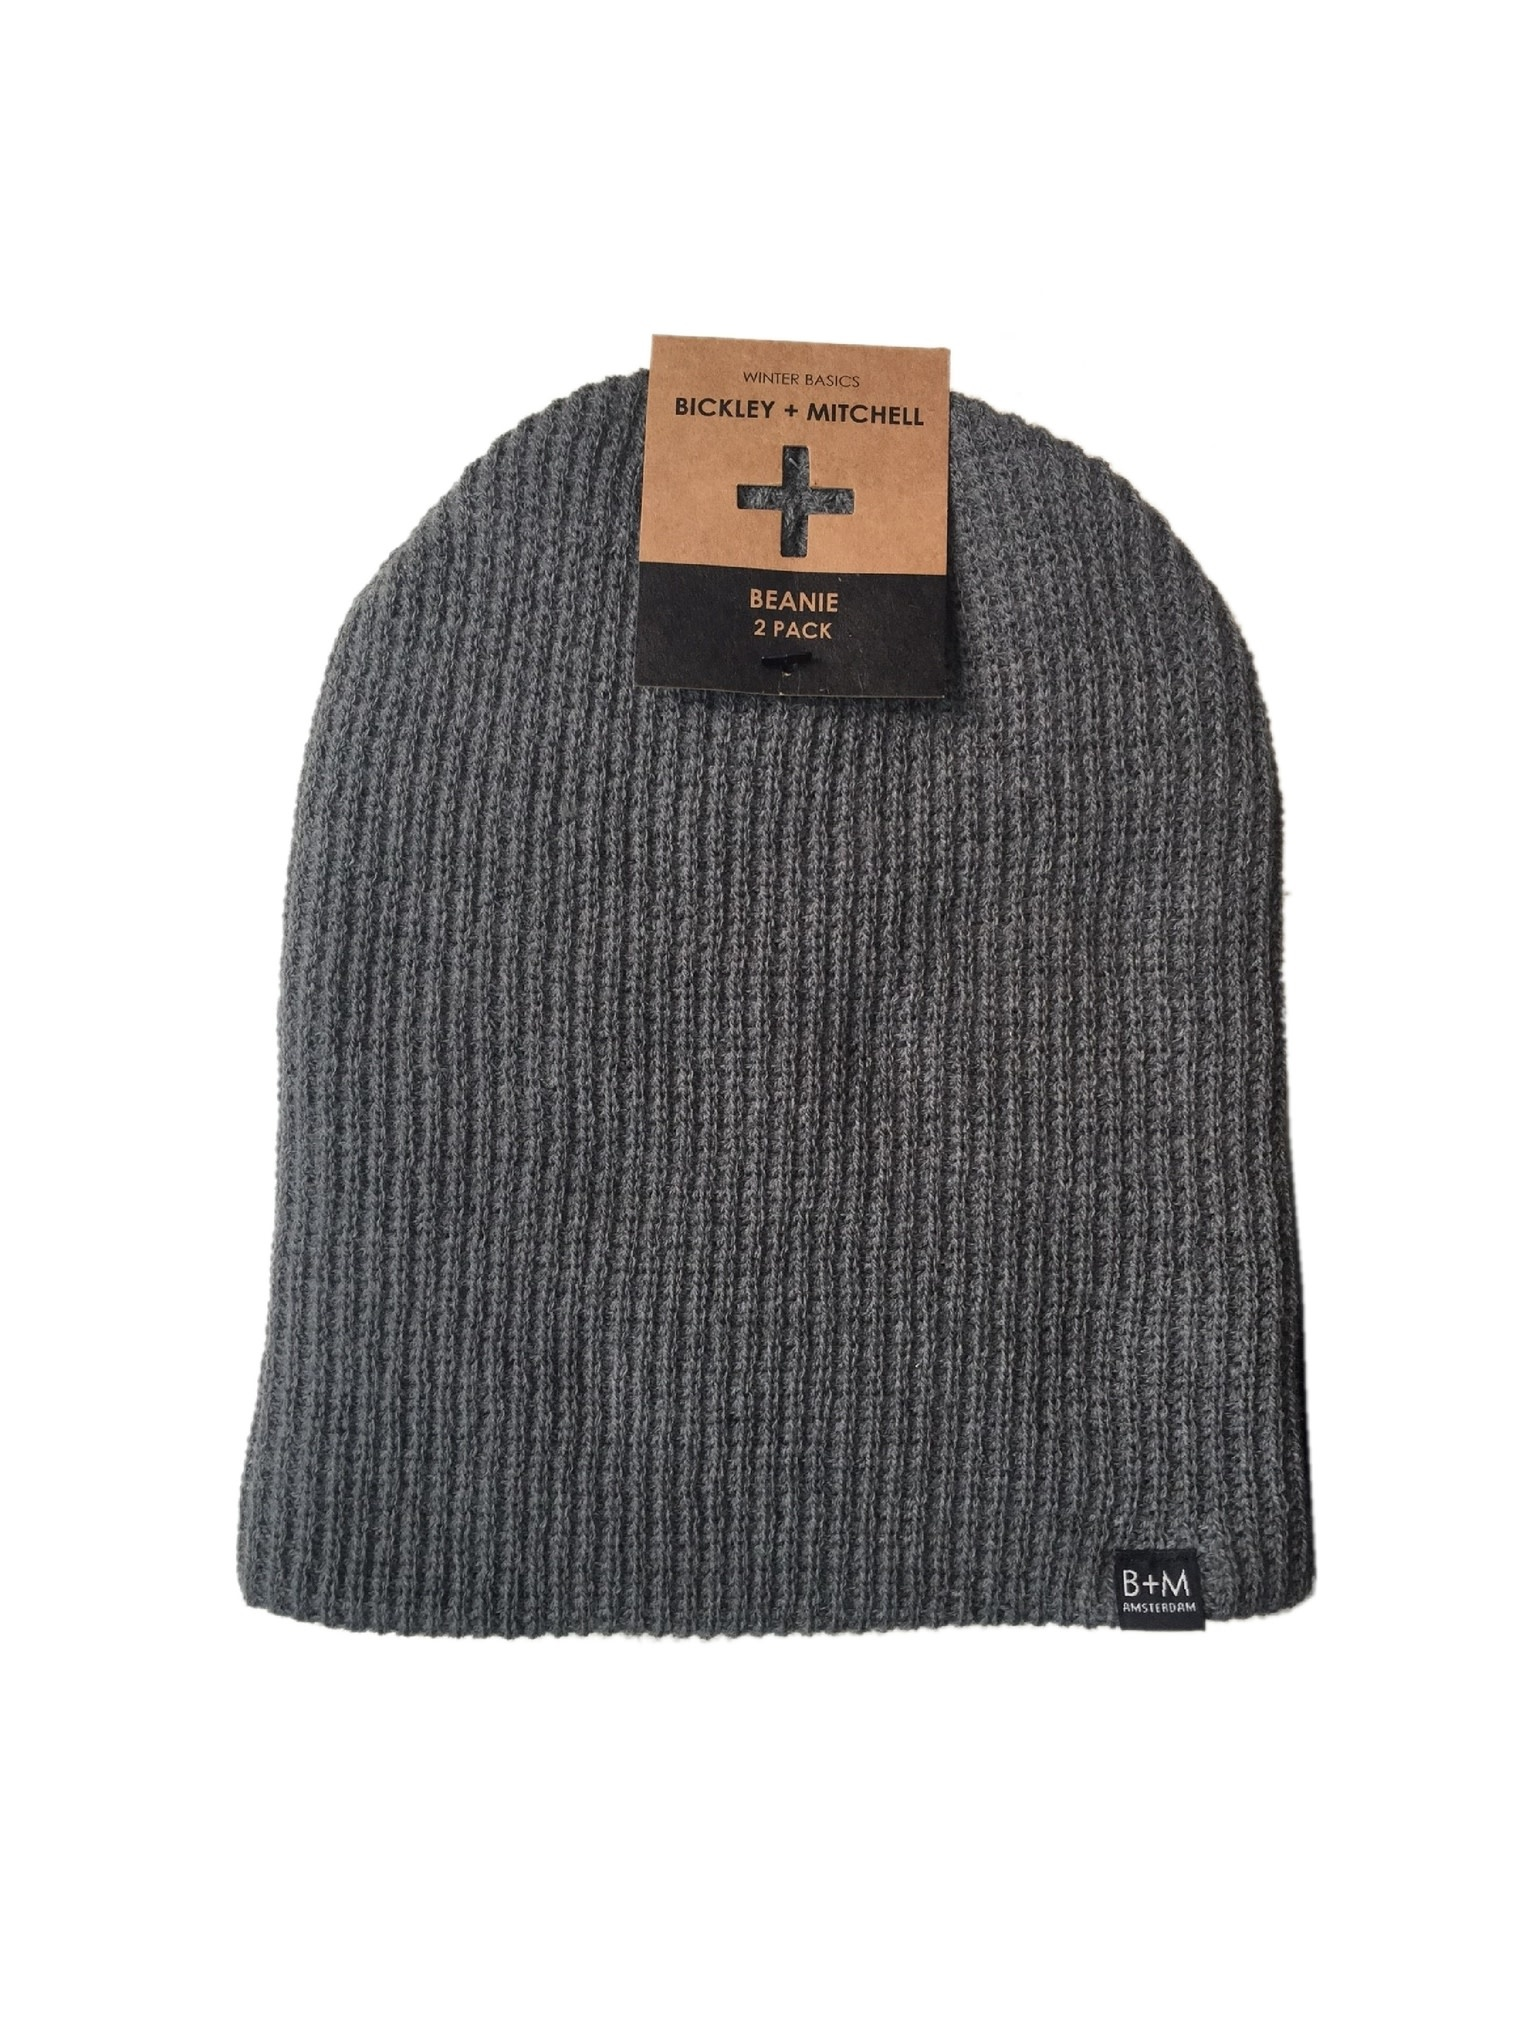 Bickley & Mitchell Bickley & Mitchell Beanie 2-Pack 71031-11 Black and Grey